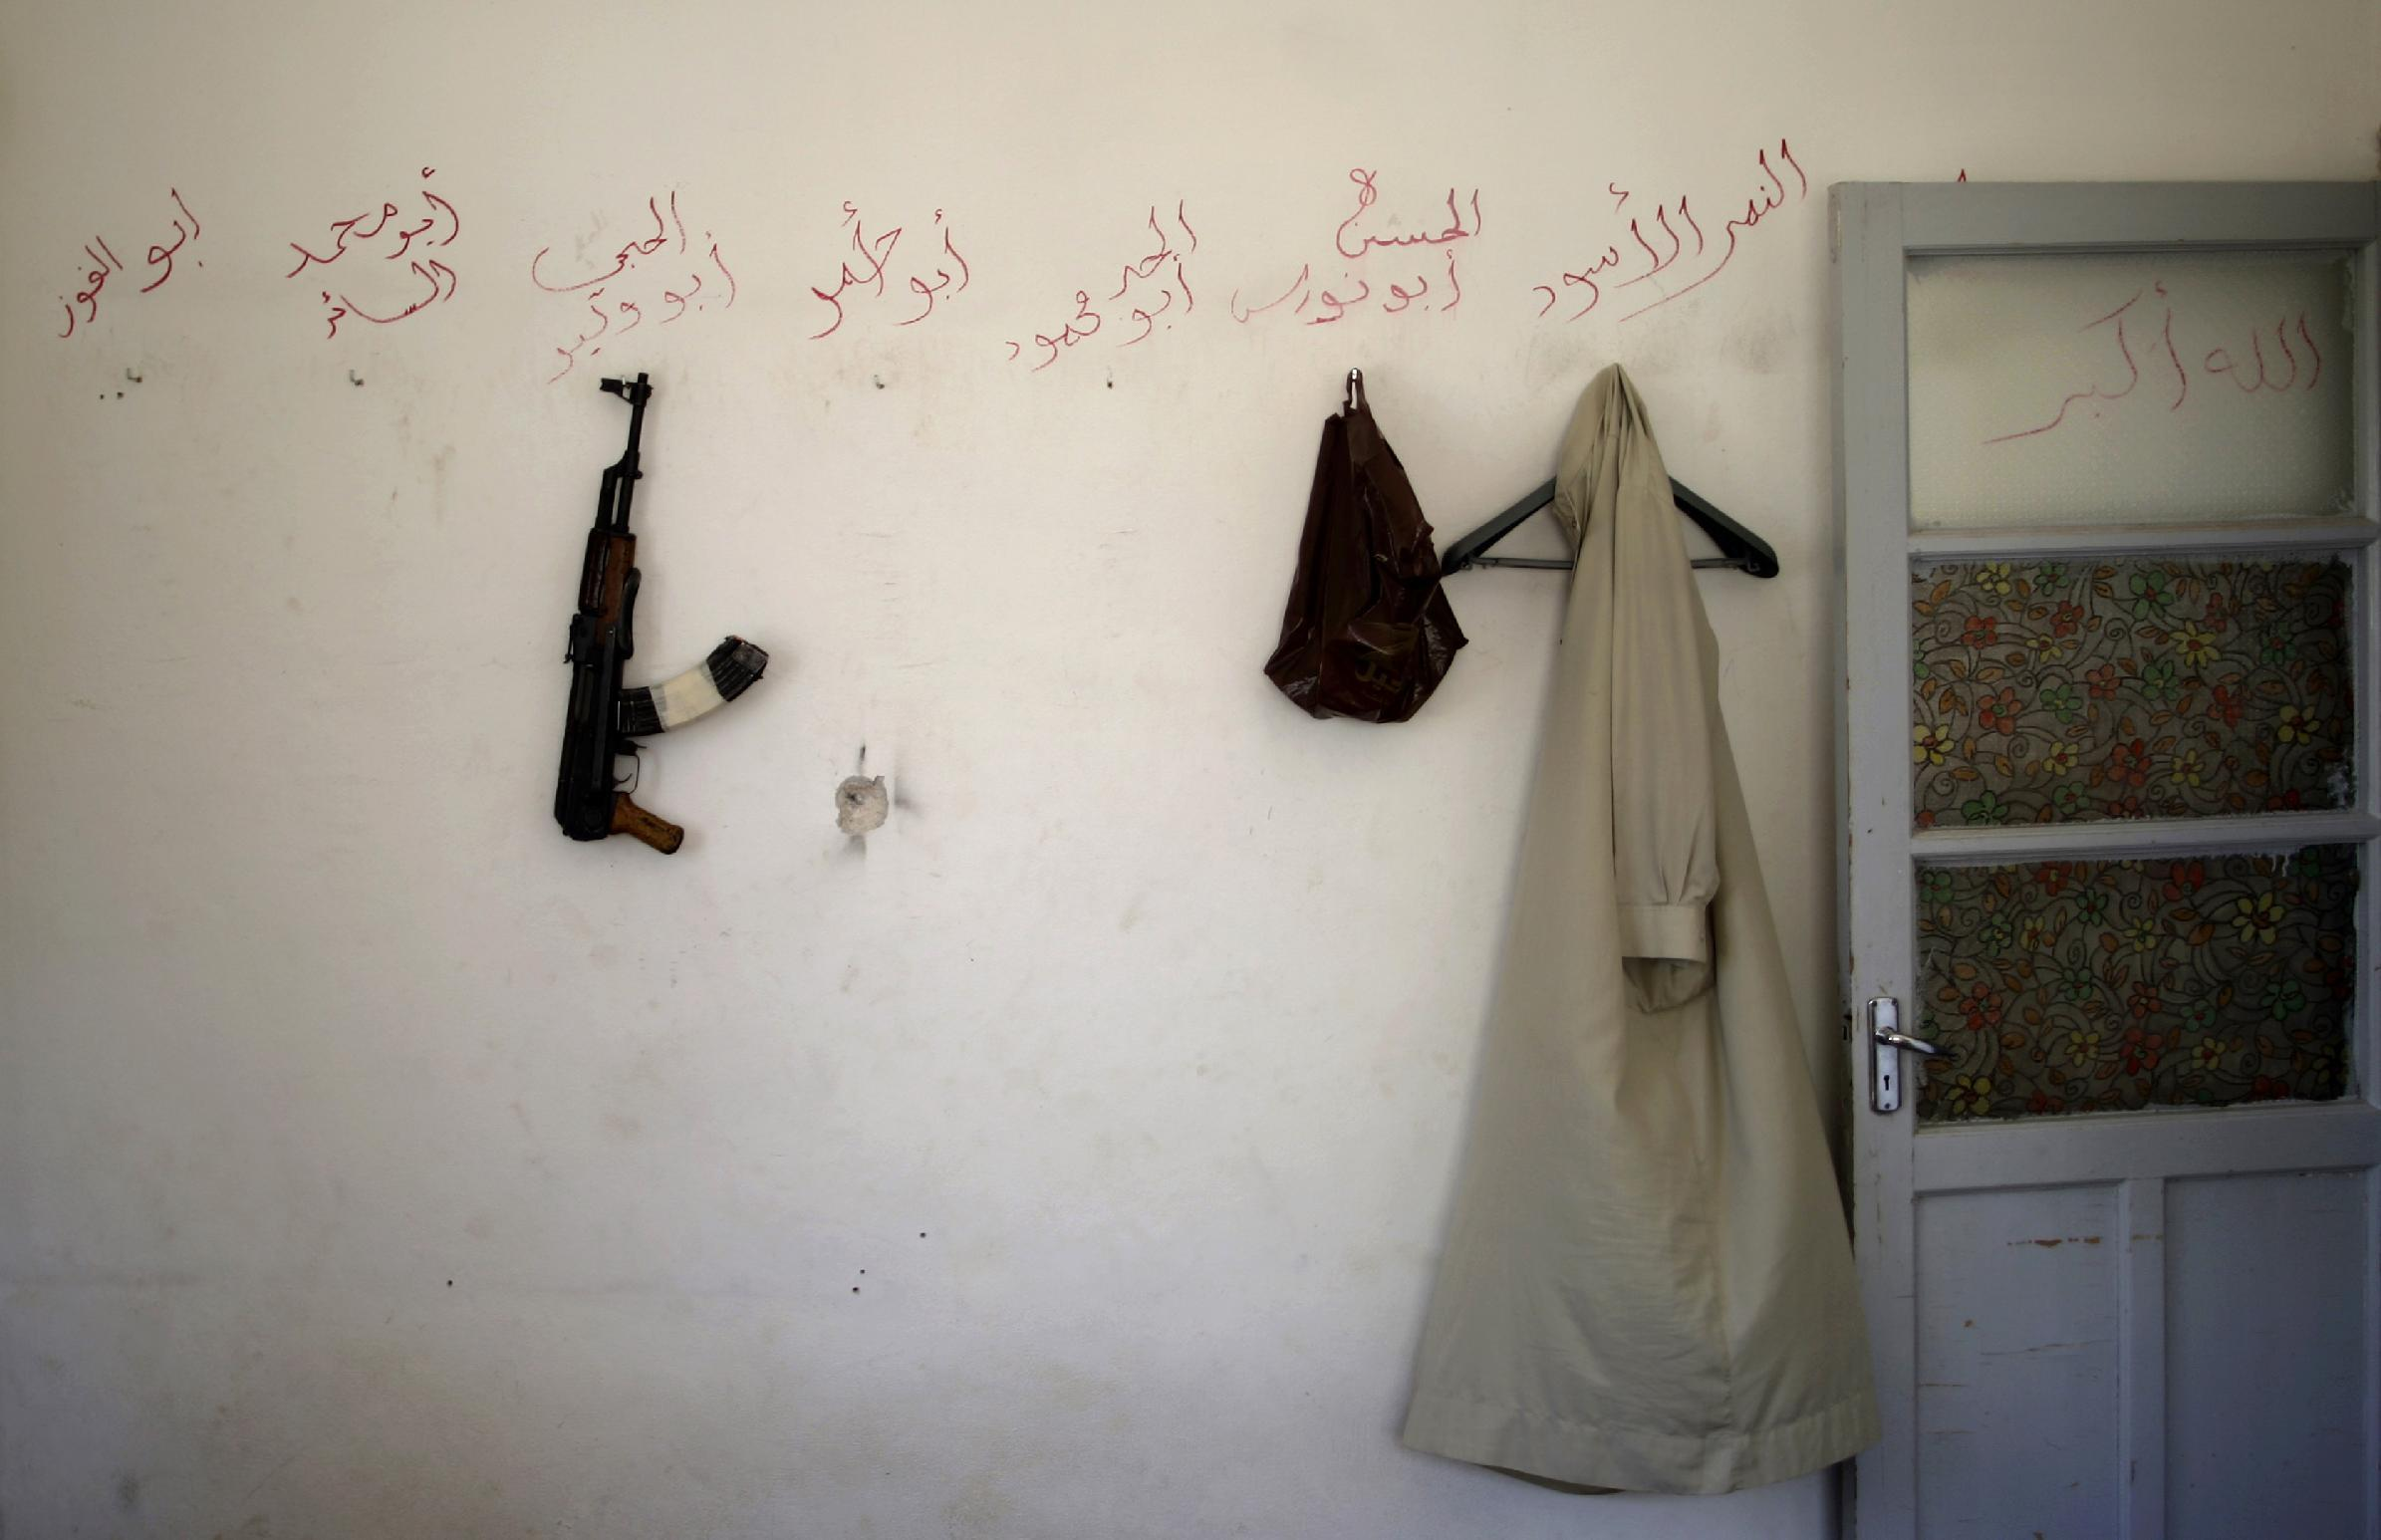 """In this Tuesday, Sept. 4, 2012 photo, a shirt and an AK-47 of a rebel fighter hang on a wall inside their headquarters in Marea, on the outskirts of Aleppo, Syria. Arabic reads on the wall from right, """"God is great, the black panther, Alhassan Abu Nawras, Abu Mahmoud, Abu Ahmad, Abu Walid, Abu Mohammed, Abu Alfoaz."""" Rebels have taken a major stride in uniting their ranks in the battle for Syria's largest city, giving them hope they could tip the balance in three-months of bloody stalemate in Aleppo, one of the biggest prizes of the civil war.. The question is how much more destruction the city can bear. Regime troops are retaliating with heavier bombardment, and civilians are bearing the brunt, their neighborhoods left in rubble. (AP Photo/Muhammed Muheisen)"""